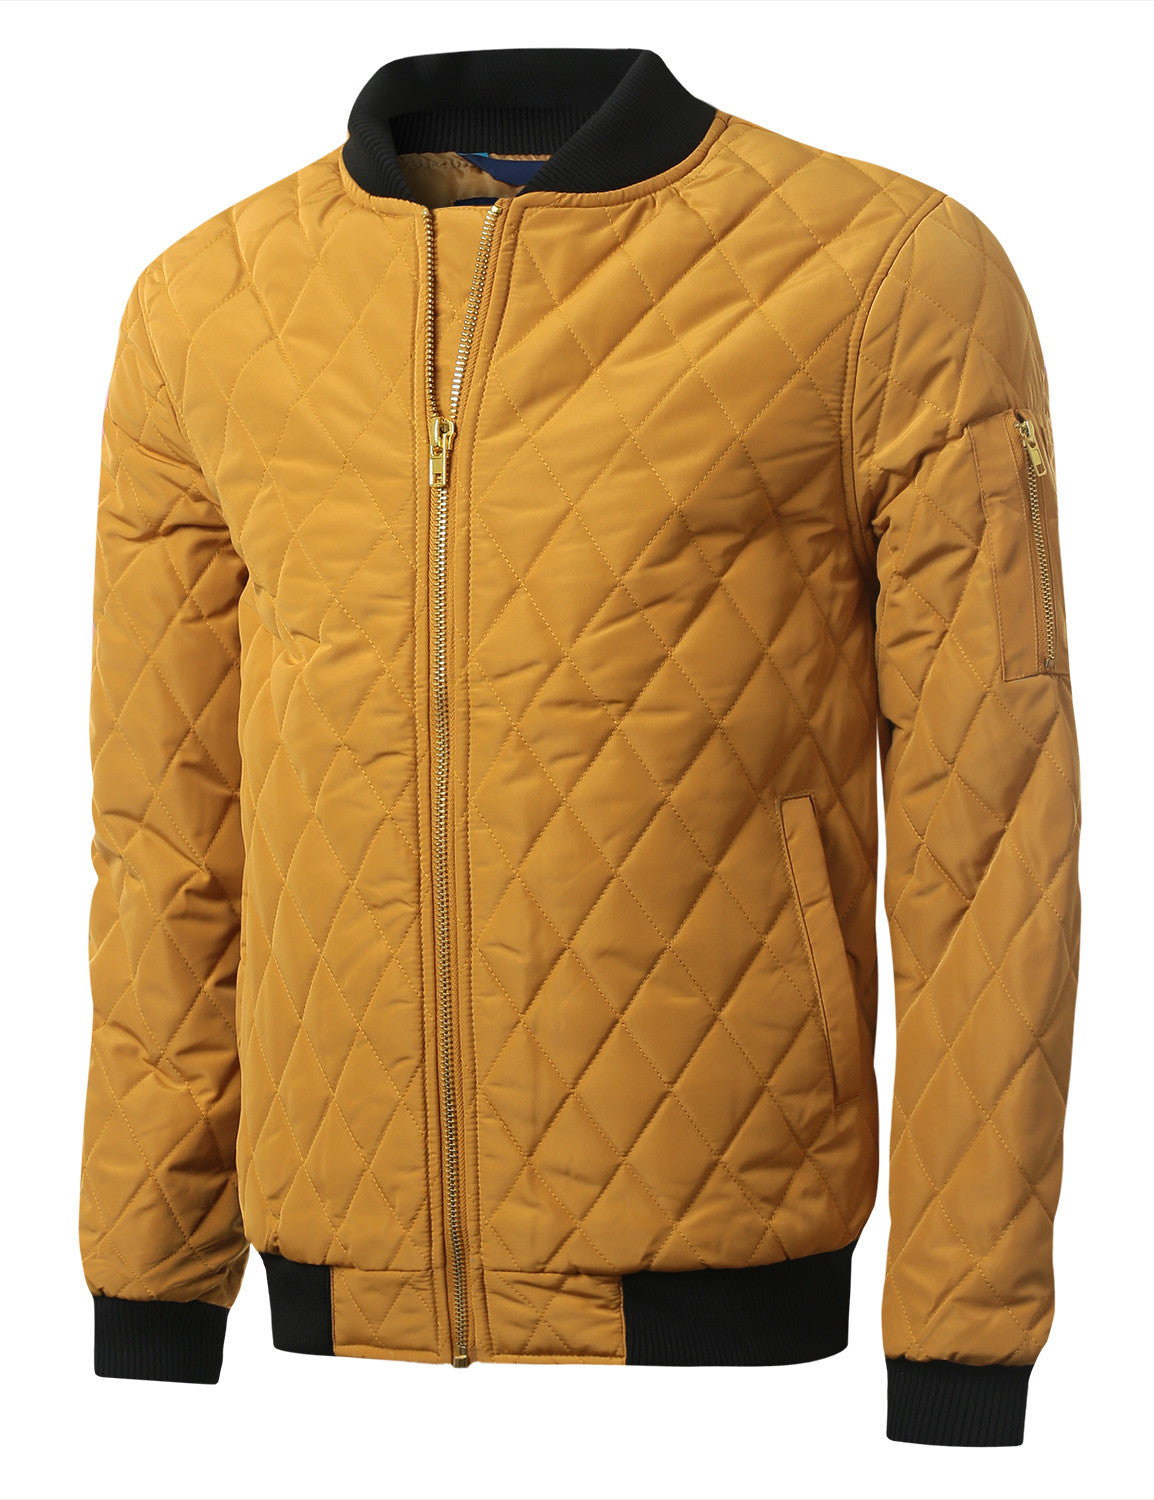 TIMBER Quilted Bomber Flight Jacket - URBANCREWS